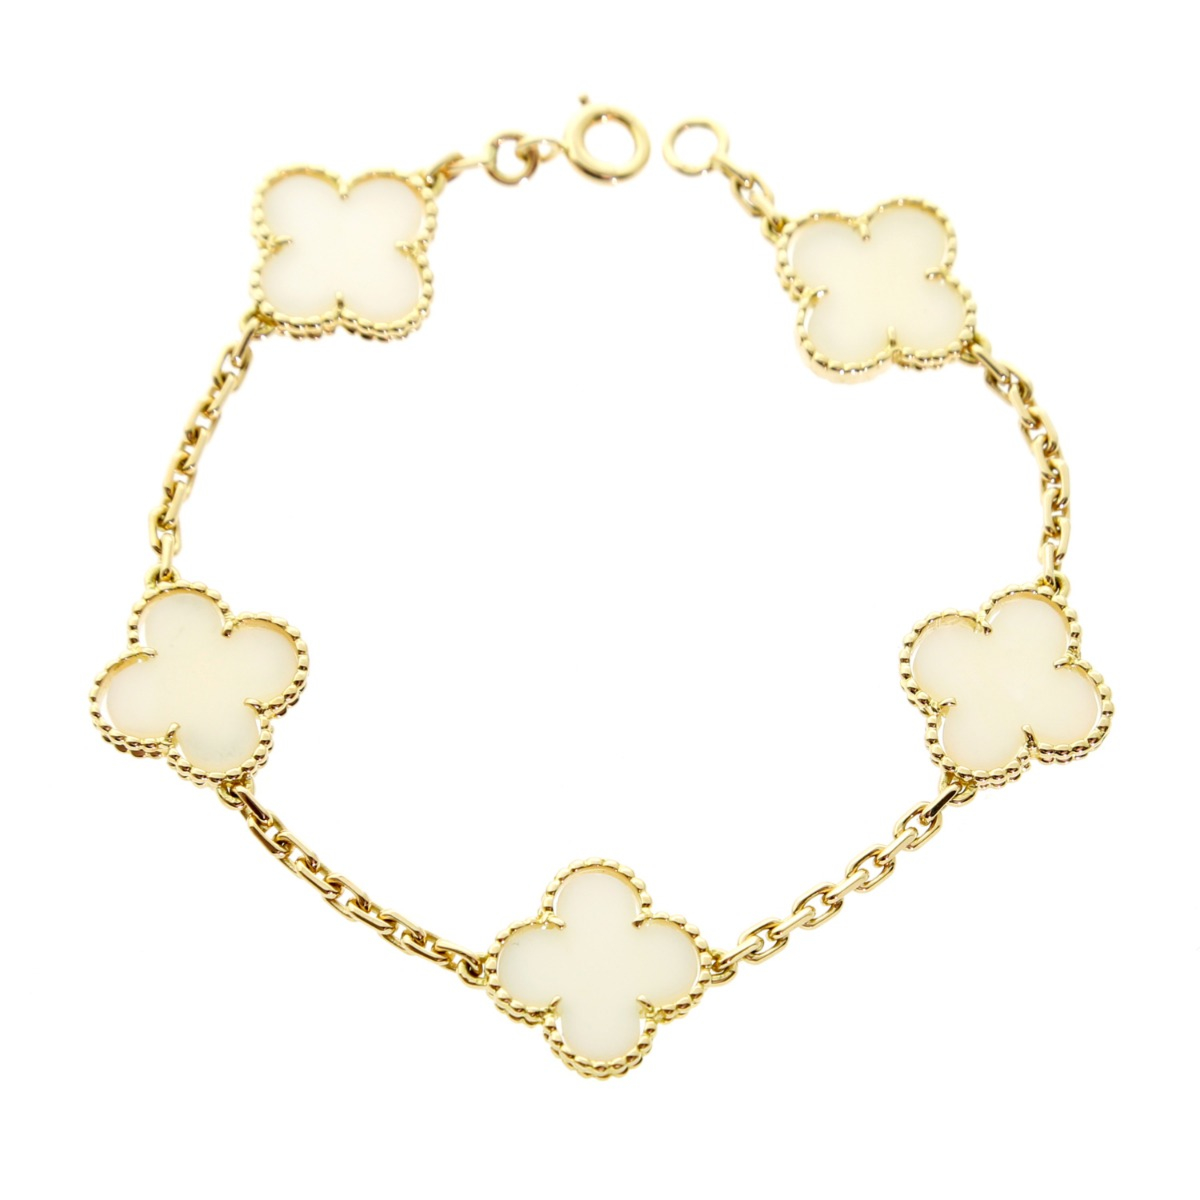 Van Cleef Arpels White Coral Alhambra Bracelet - Van Cleef and Arpels Jewelry